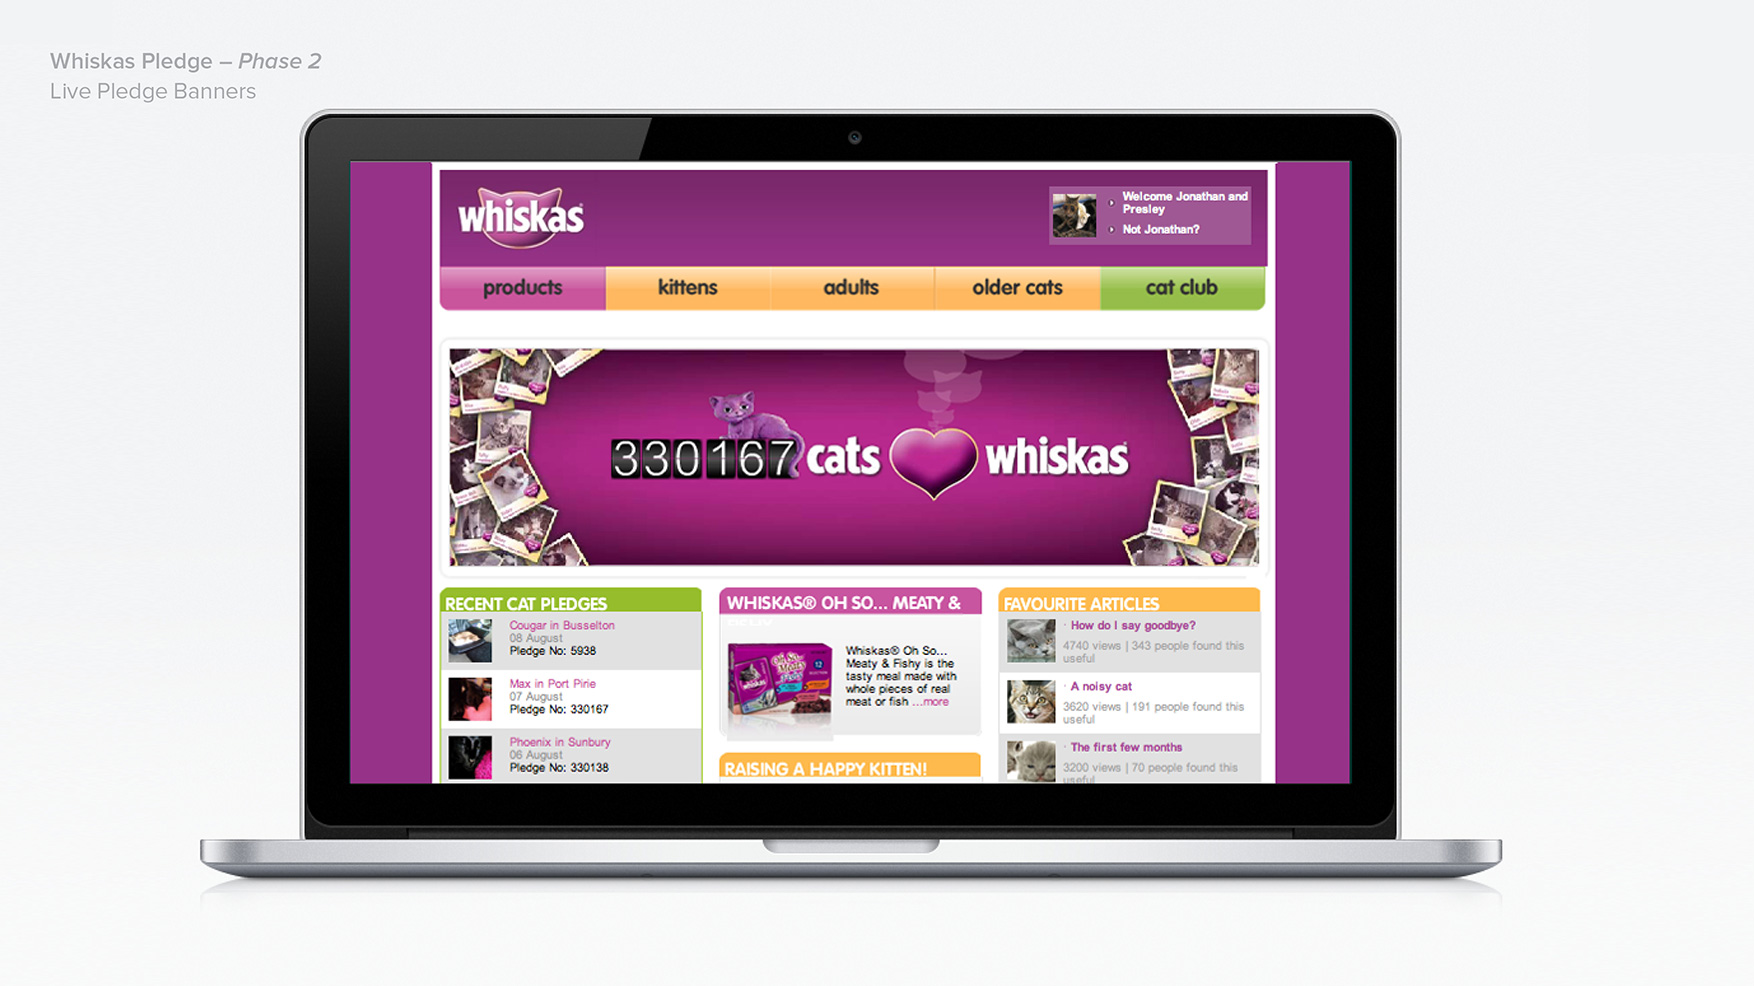 BDN_website_tiles_Whiskas_Pledge9.jpg